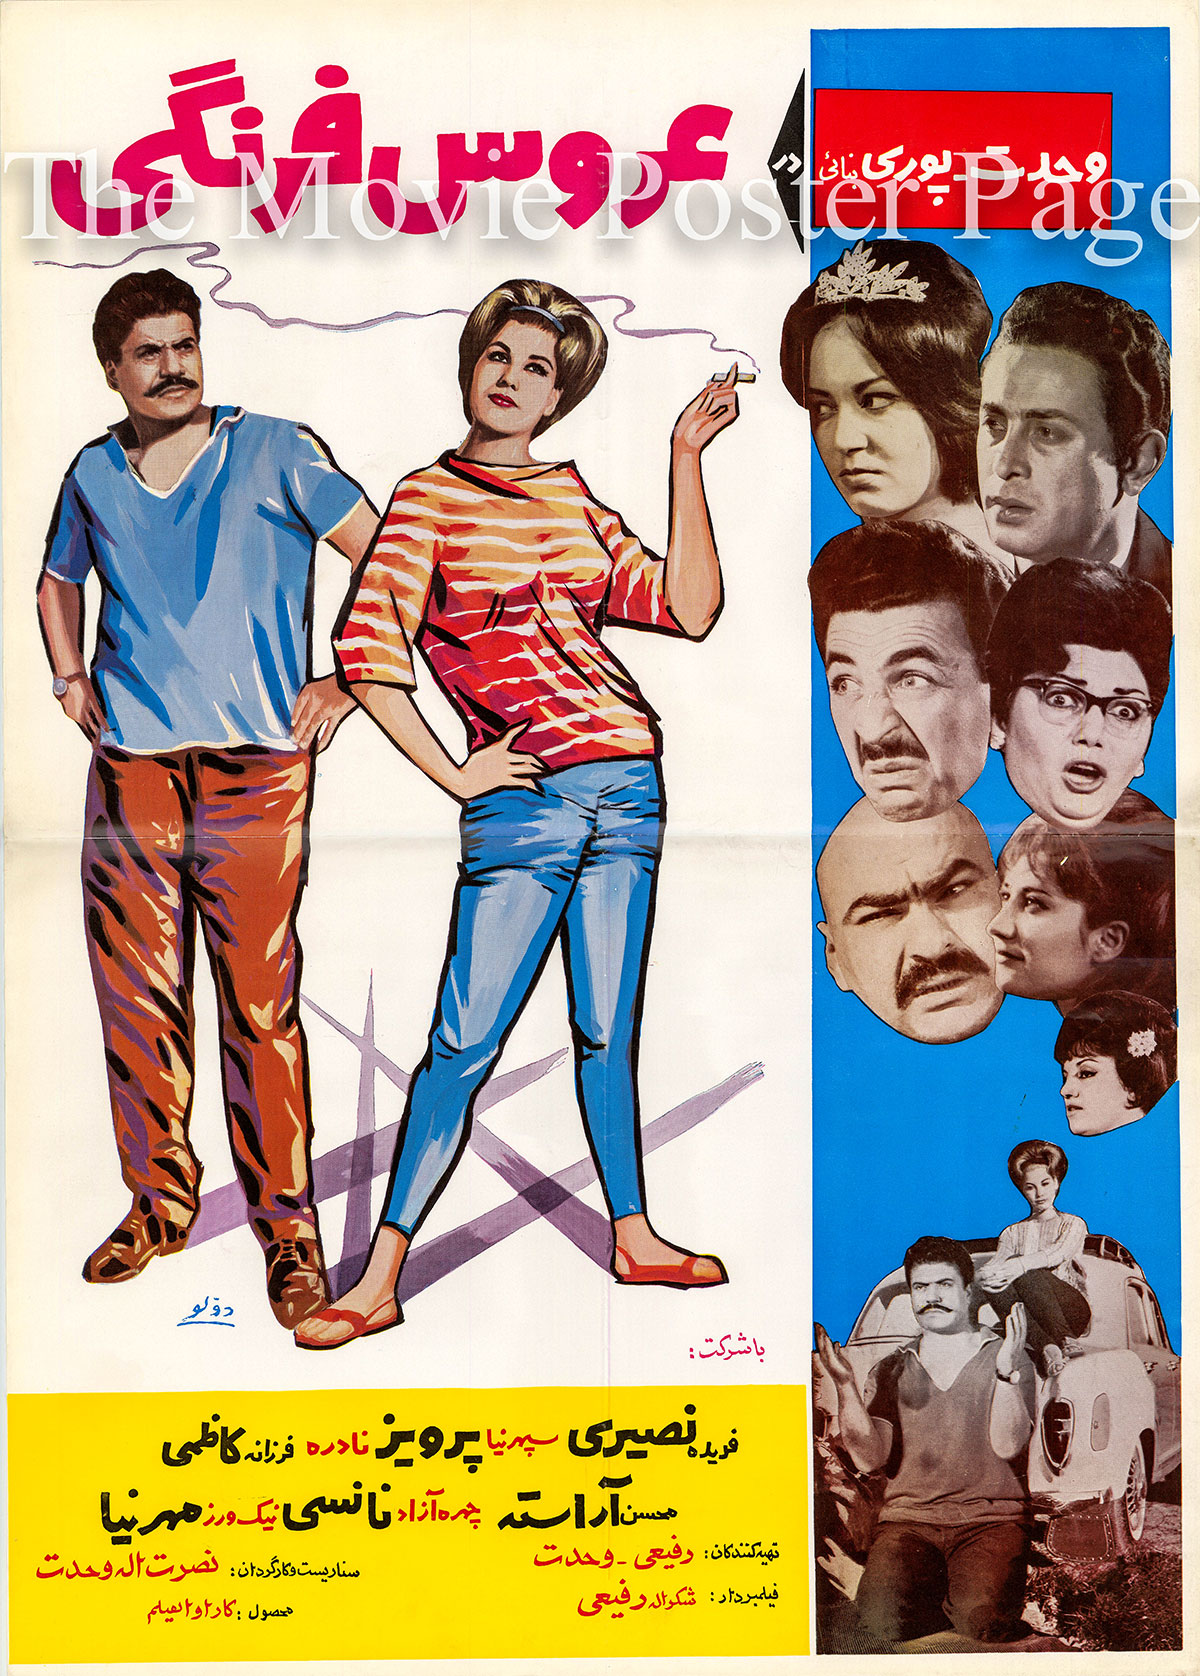 Pictured is an Iranian promotional poster for the 1964 Nasratolah Vahdat film The Foreign Bride starring Pouri Baneai.